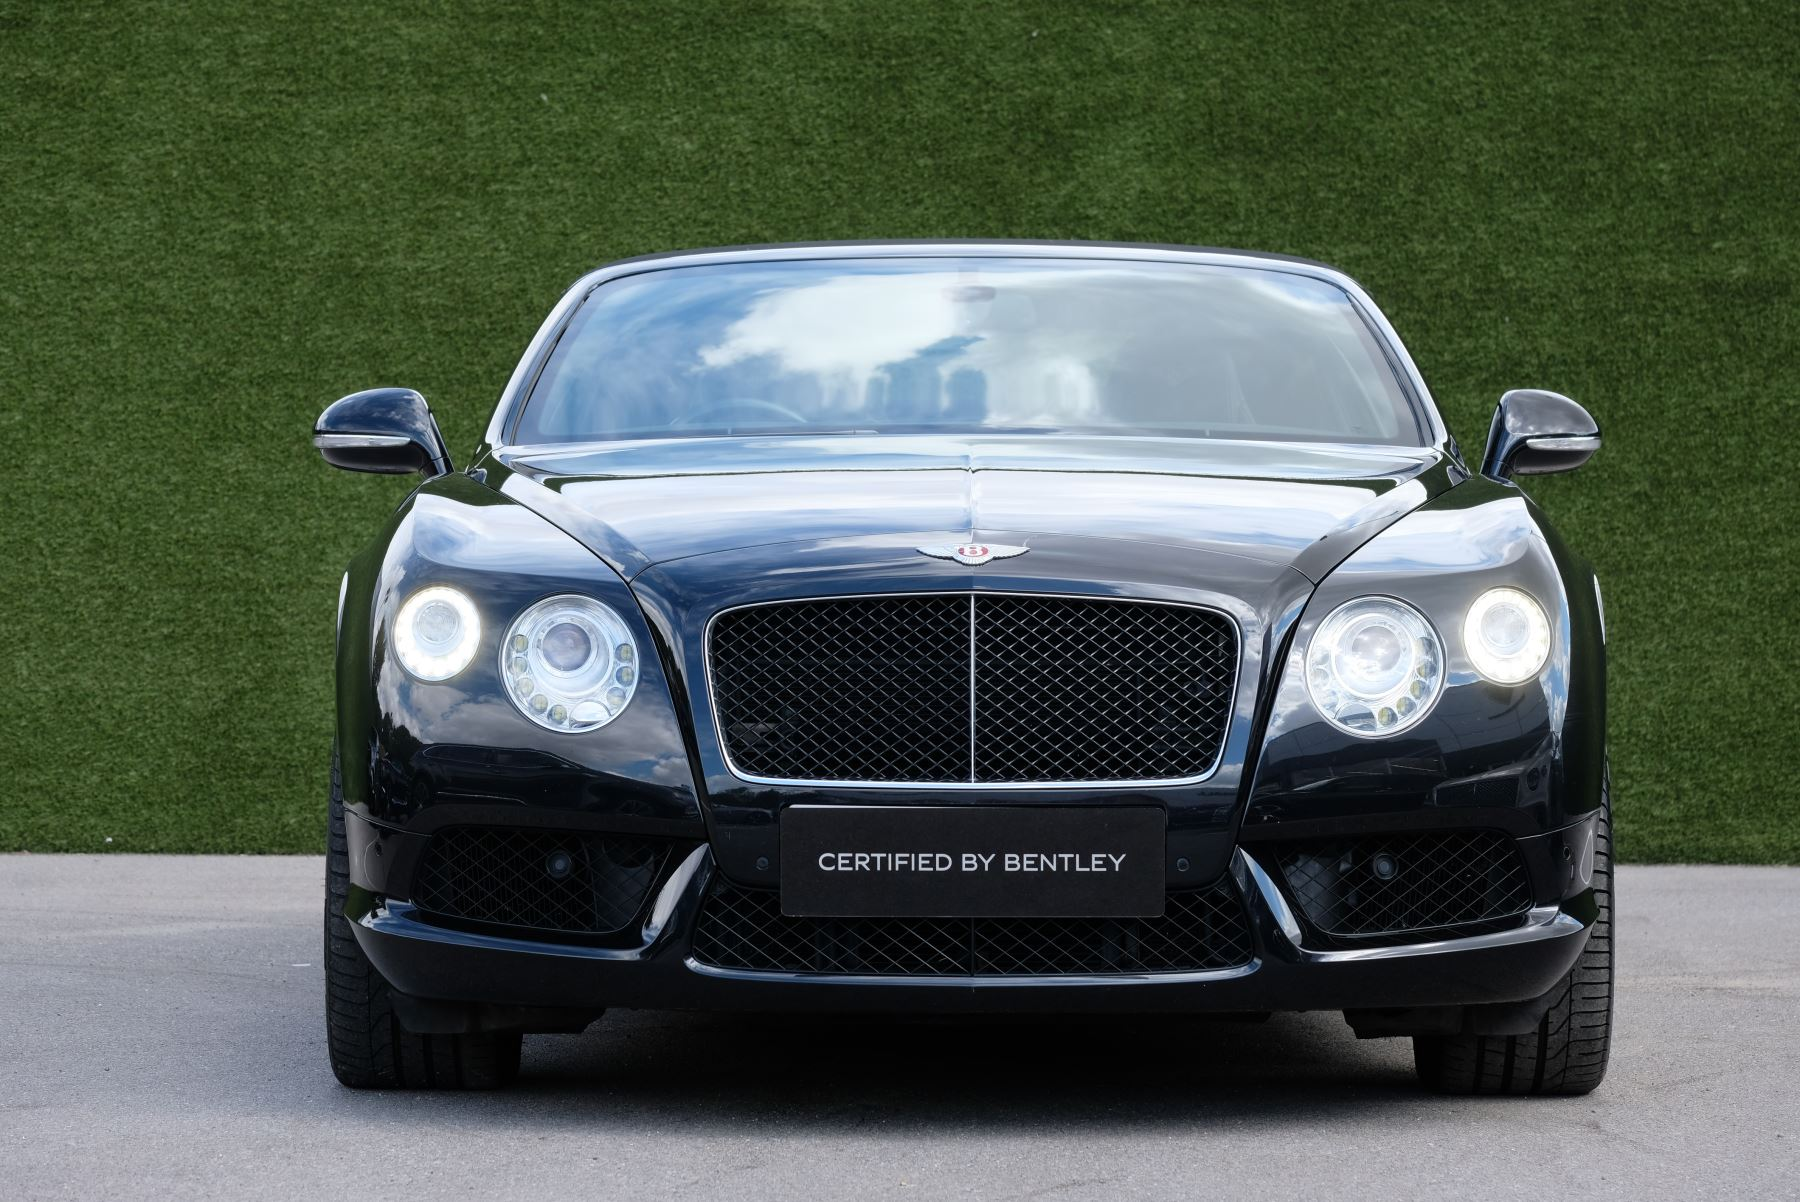 Bentley Continental GTC 4.0 V8 2dr image 3